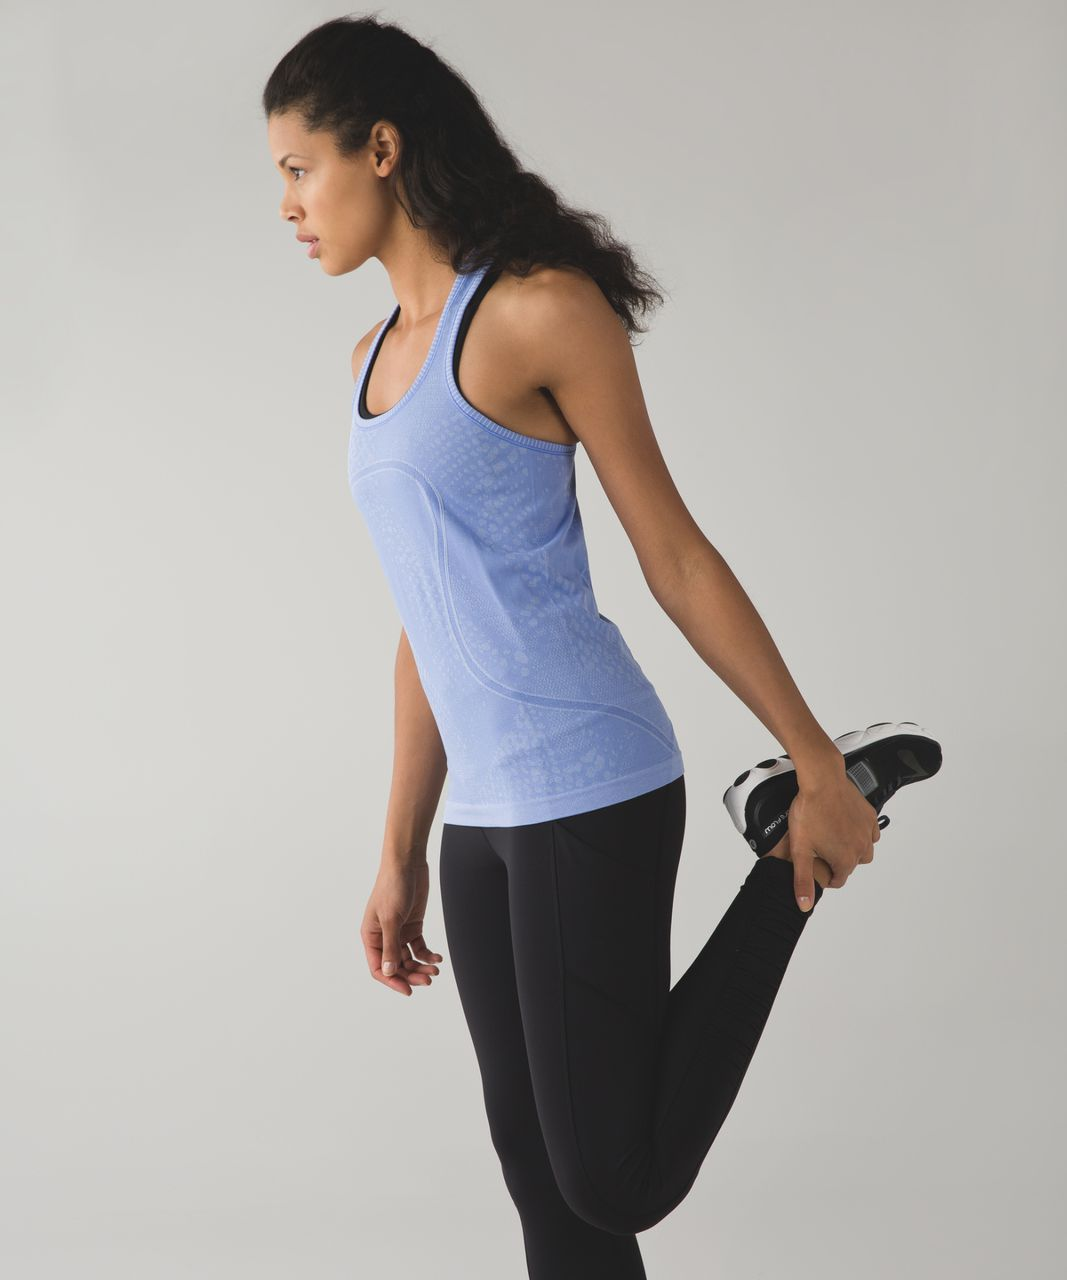 Lululemon Swiftly Tech Racerback - Heathered Lullaby